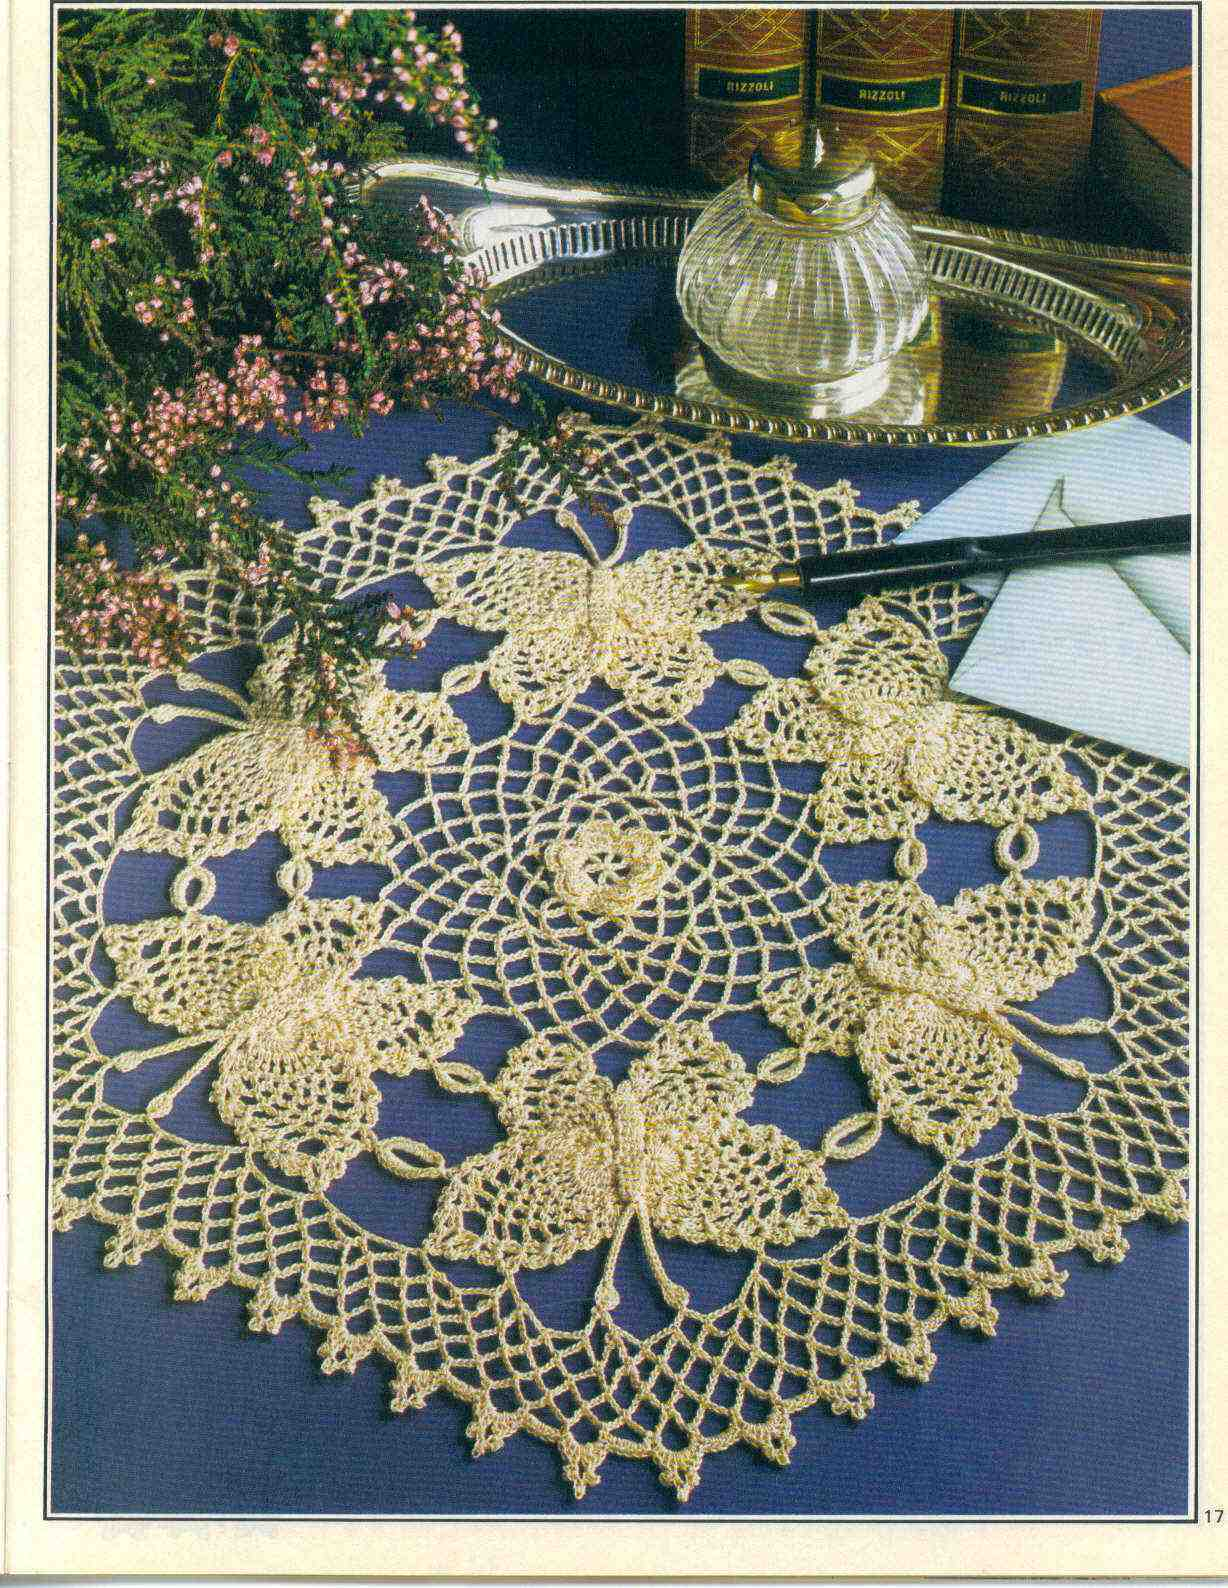 Treasured Heirlooms Crochet Vintage Pattern Shop, Thread Crochet p. 4